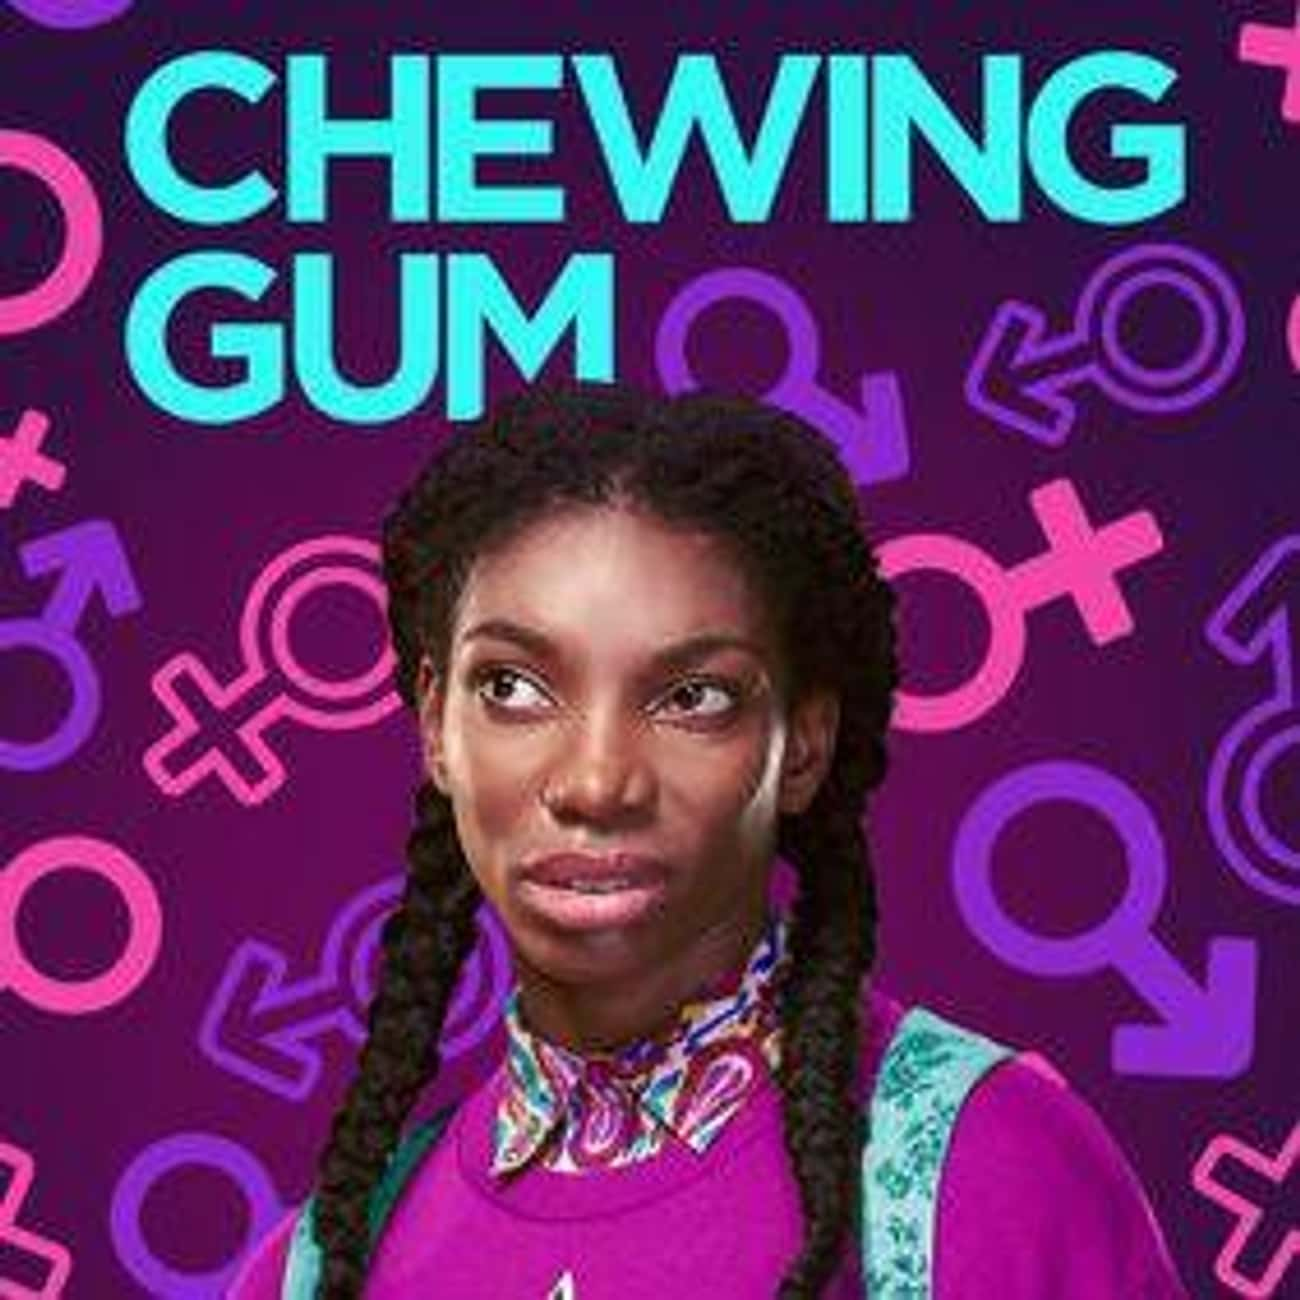 Chewing Gum is listed (or ranked) 3 on the list What To Watch If You Love 'Fleabag'